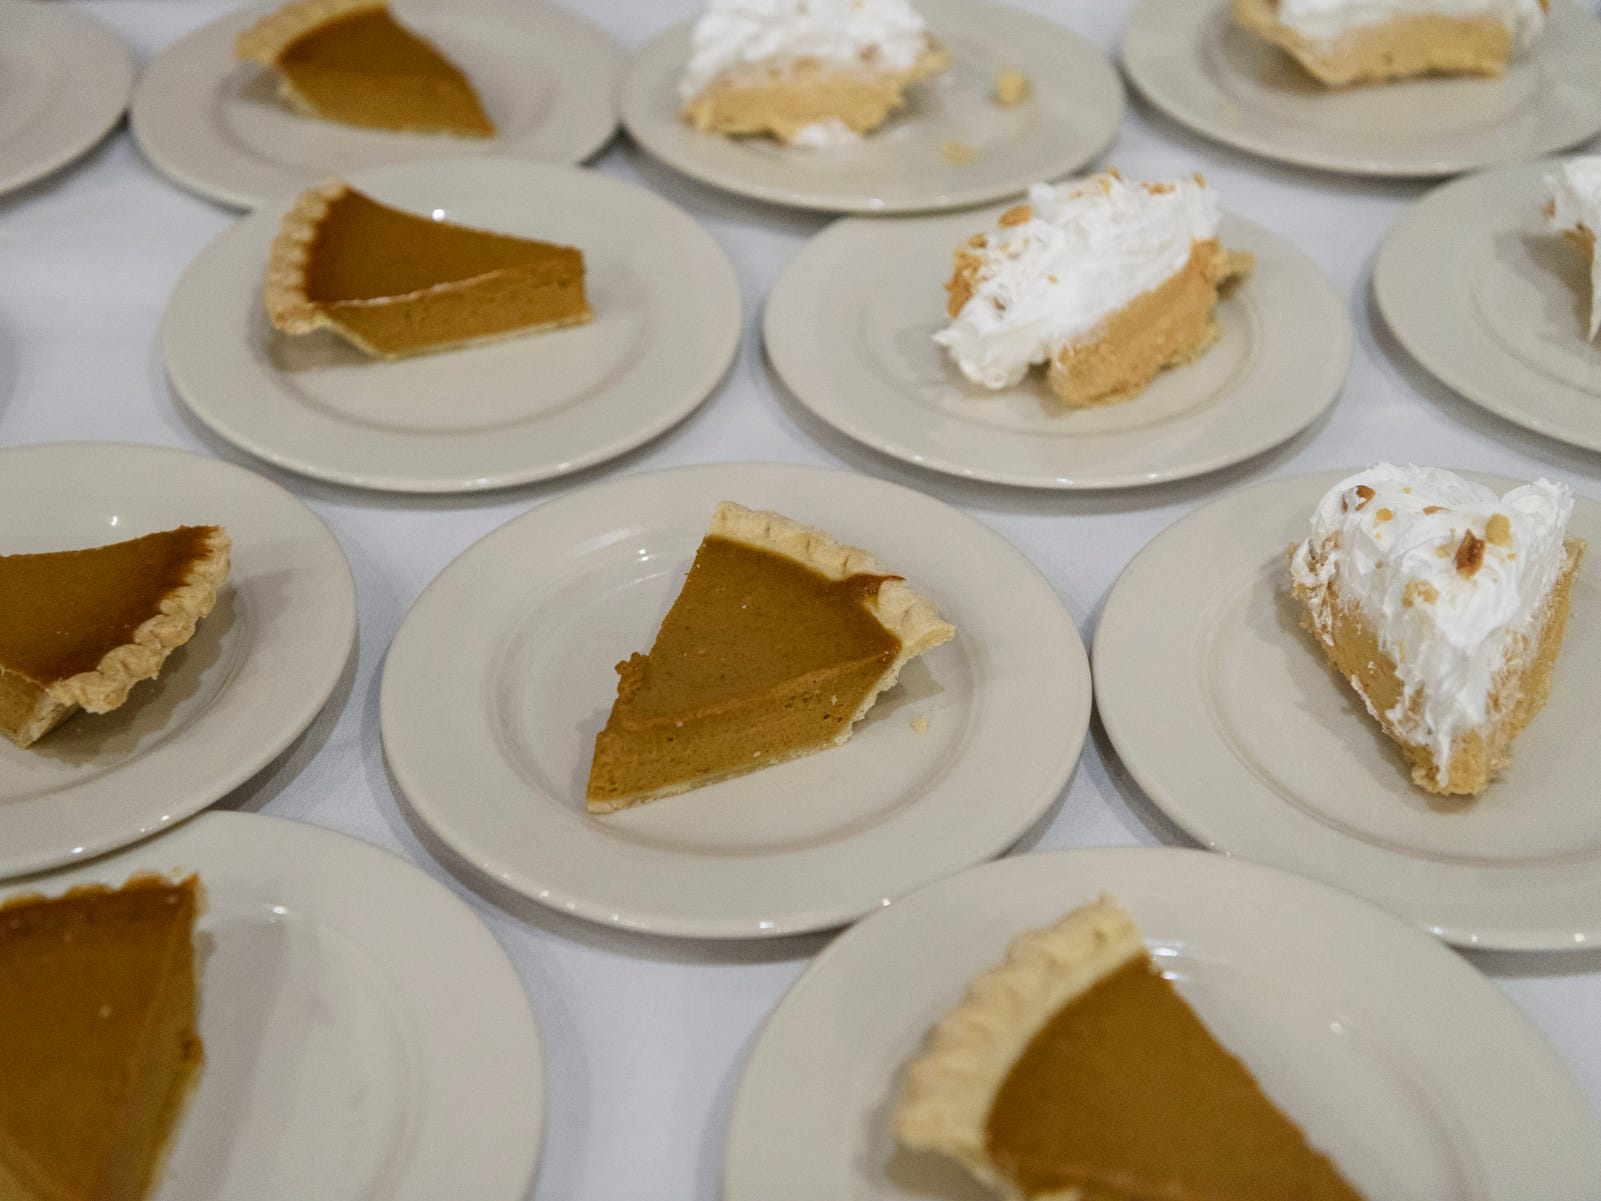 Rows and rows of Peanut Butter, Pecan and Pumpkin pies sit out for people to take during a free Thanksgiving buffet at Sauced in Evansville's Haynie's Corner Arts District, Thursday afternoon, Nov. 22, 2018.